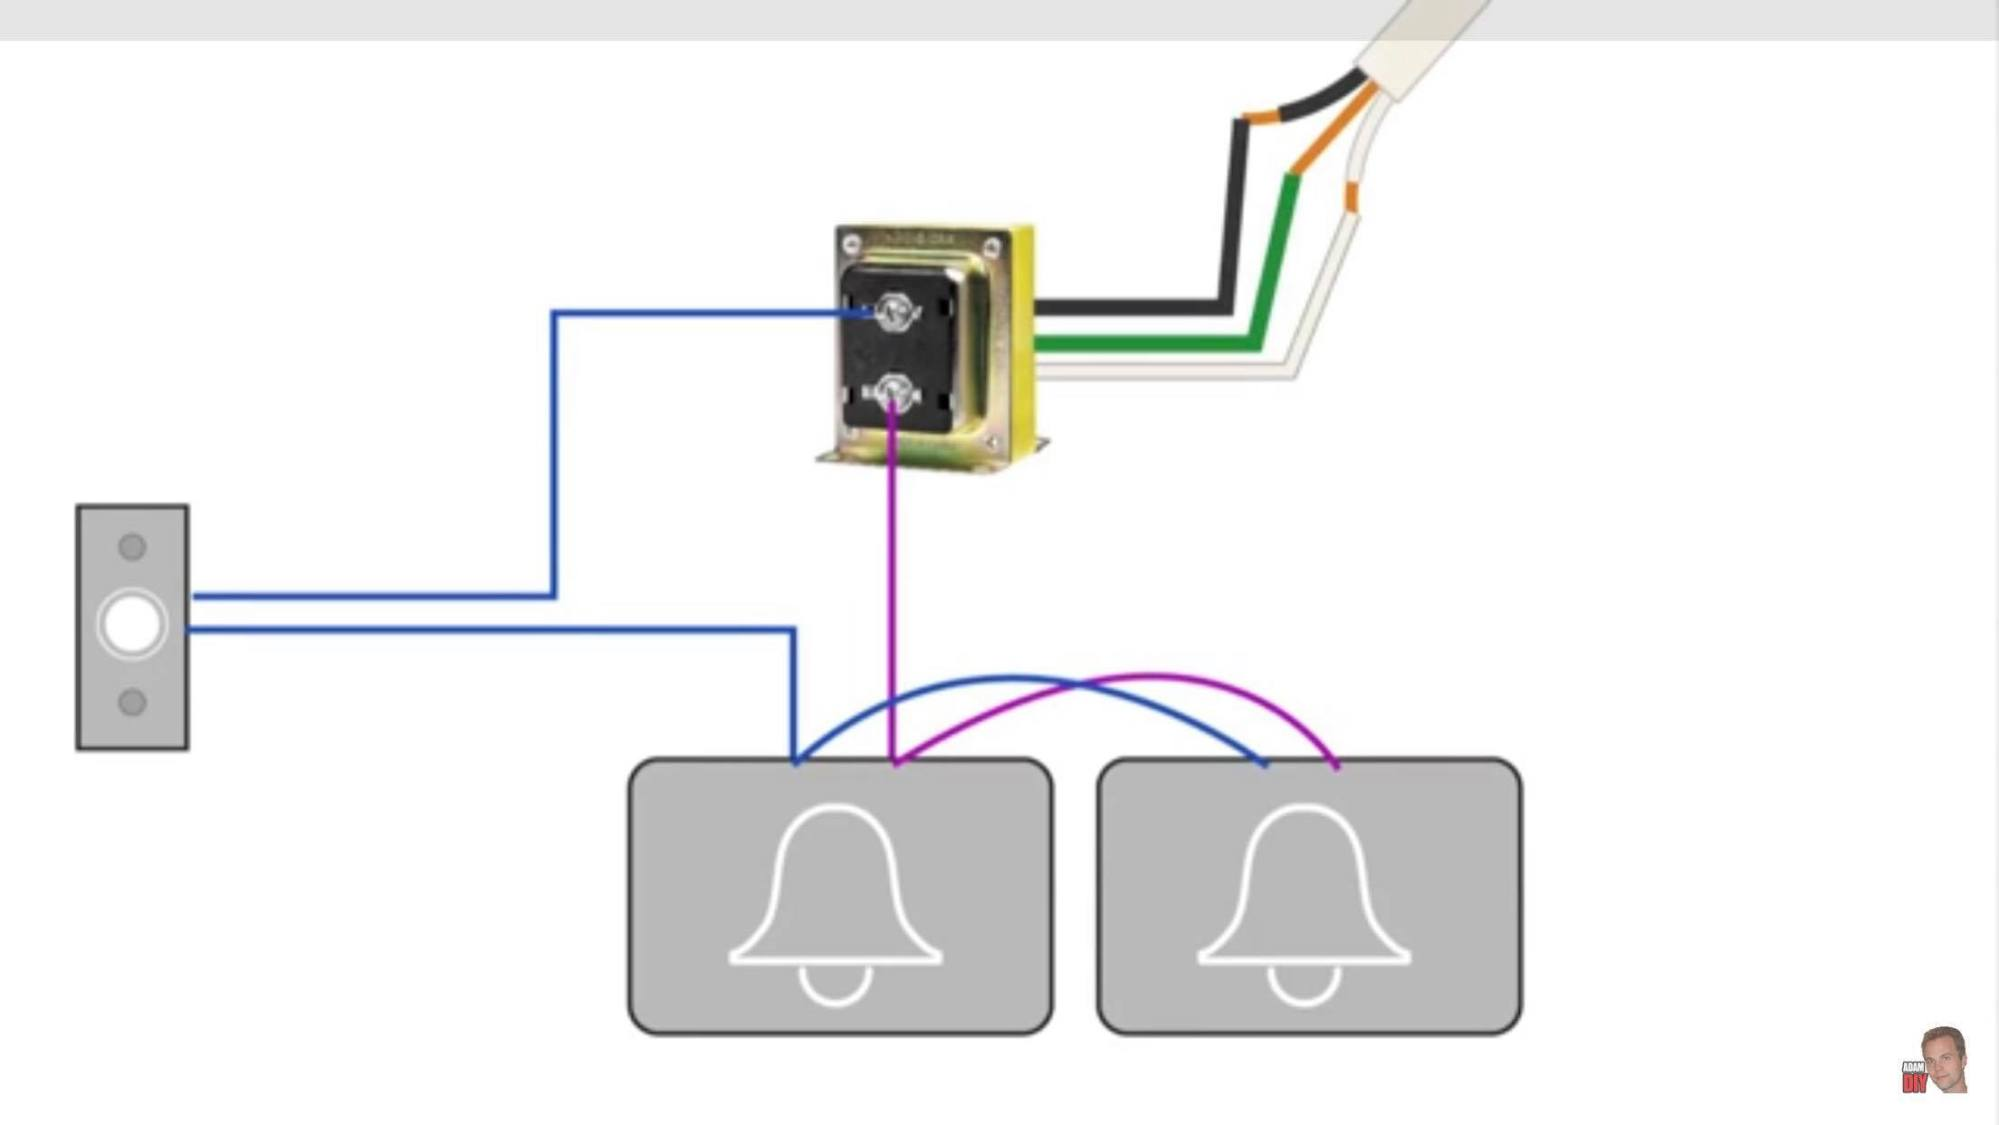 hight resolution of need help wiring a dual switch doityourselfcom community forums device for hvac wiring help doityourselfcom community